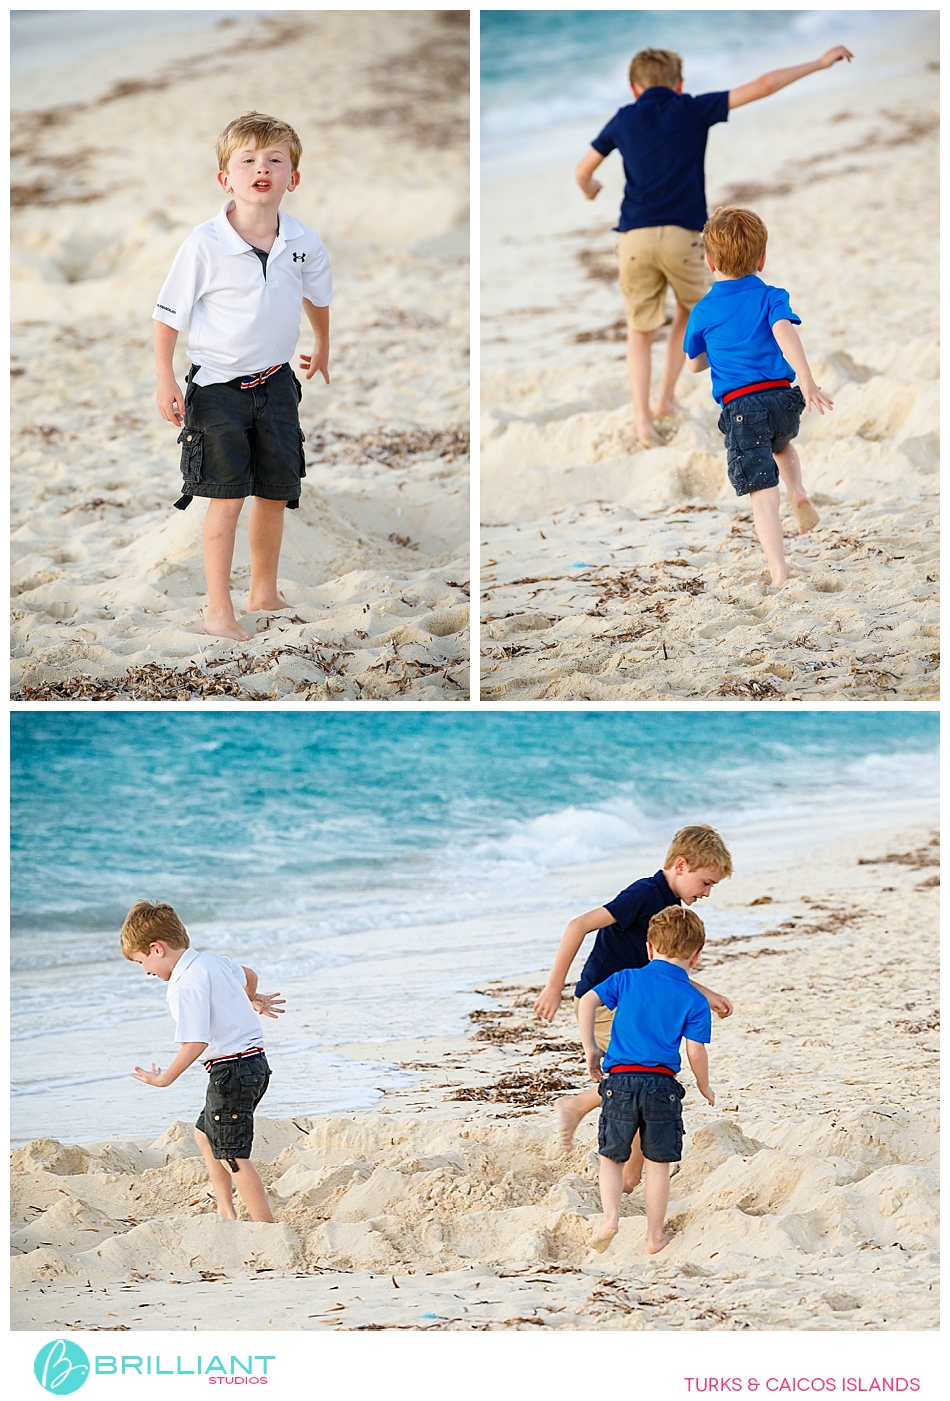 kids during a photo shoot in the turks and caicos